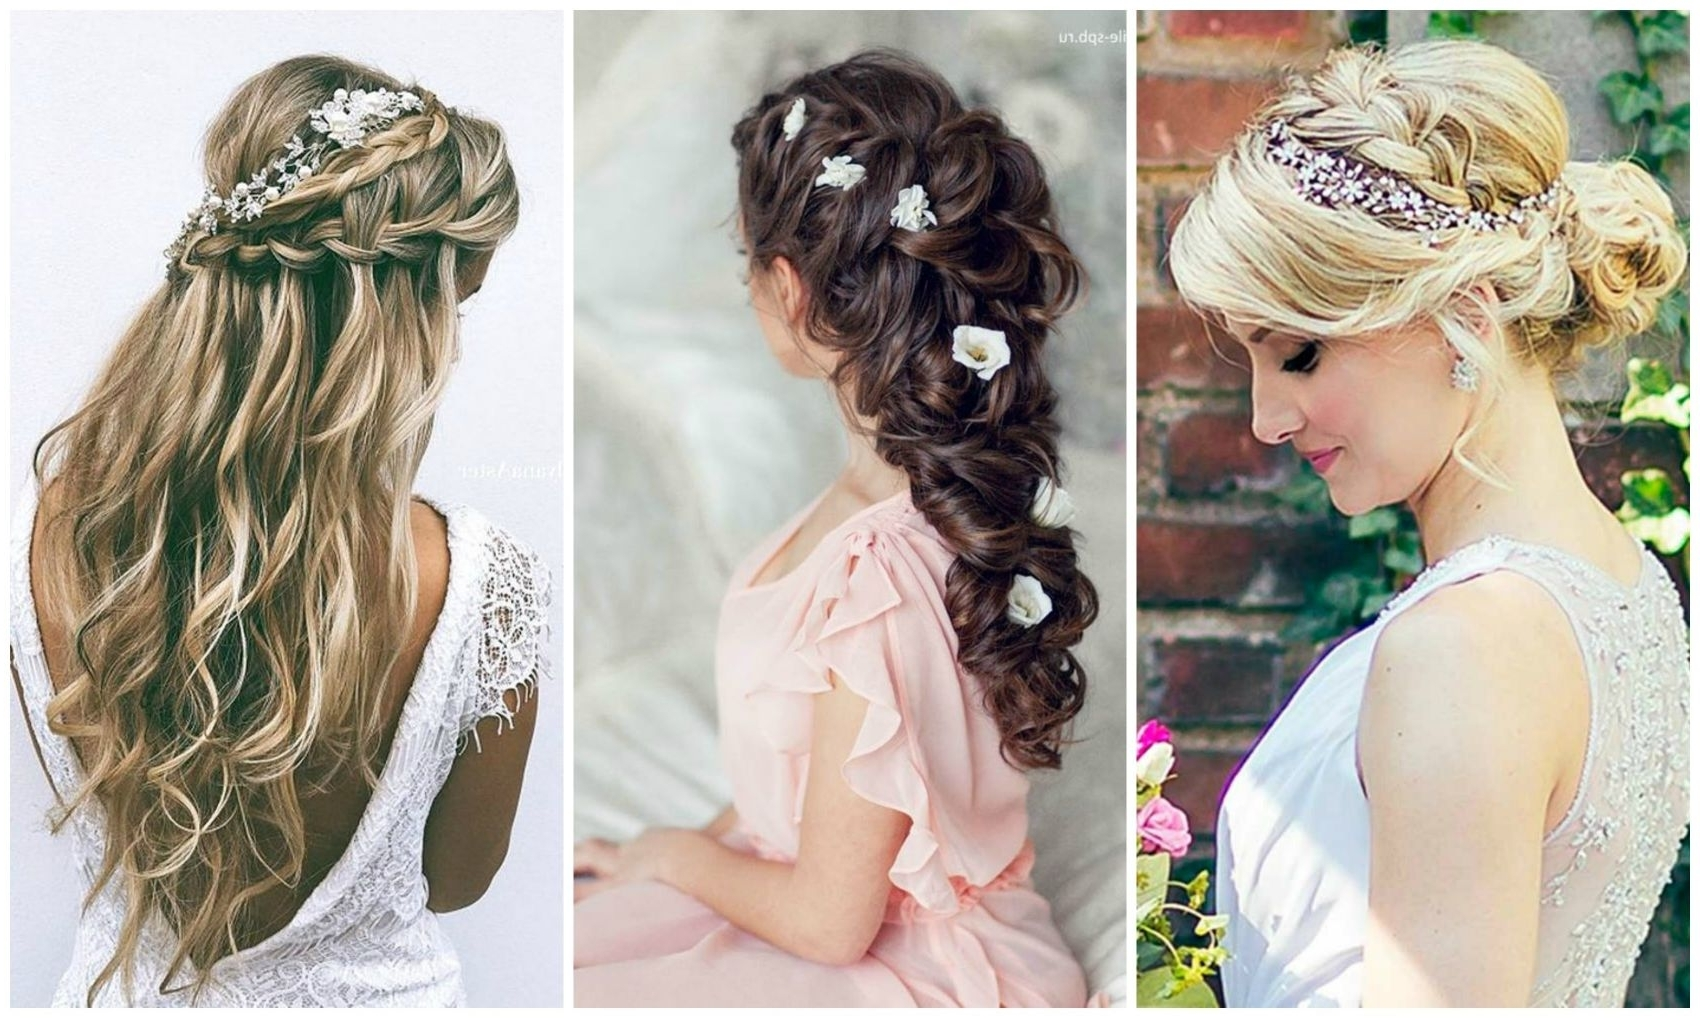 2017 Wedding Hairstyles For Bride And Bridesmaids Throughout Amazing Wedding Hairstyles U Top Hair Ideas For Brides Pic Medium (View 2 of 15)